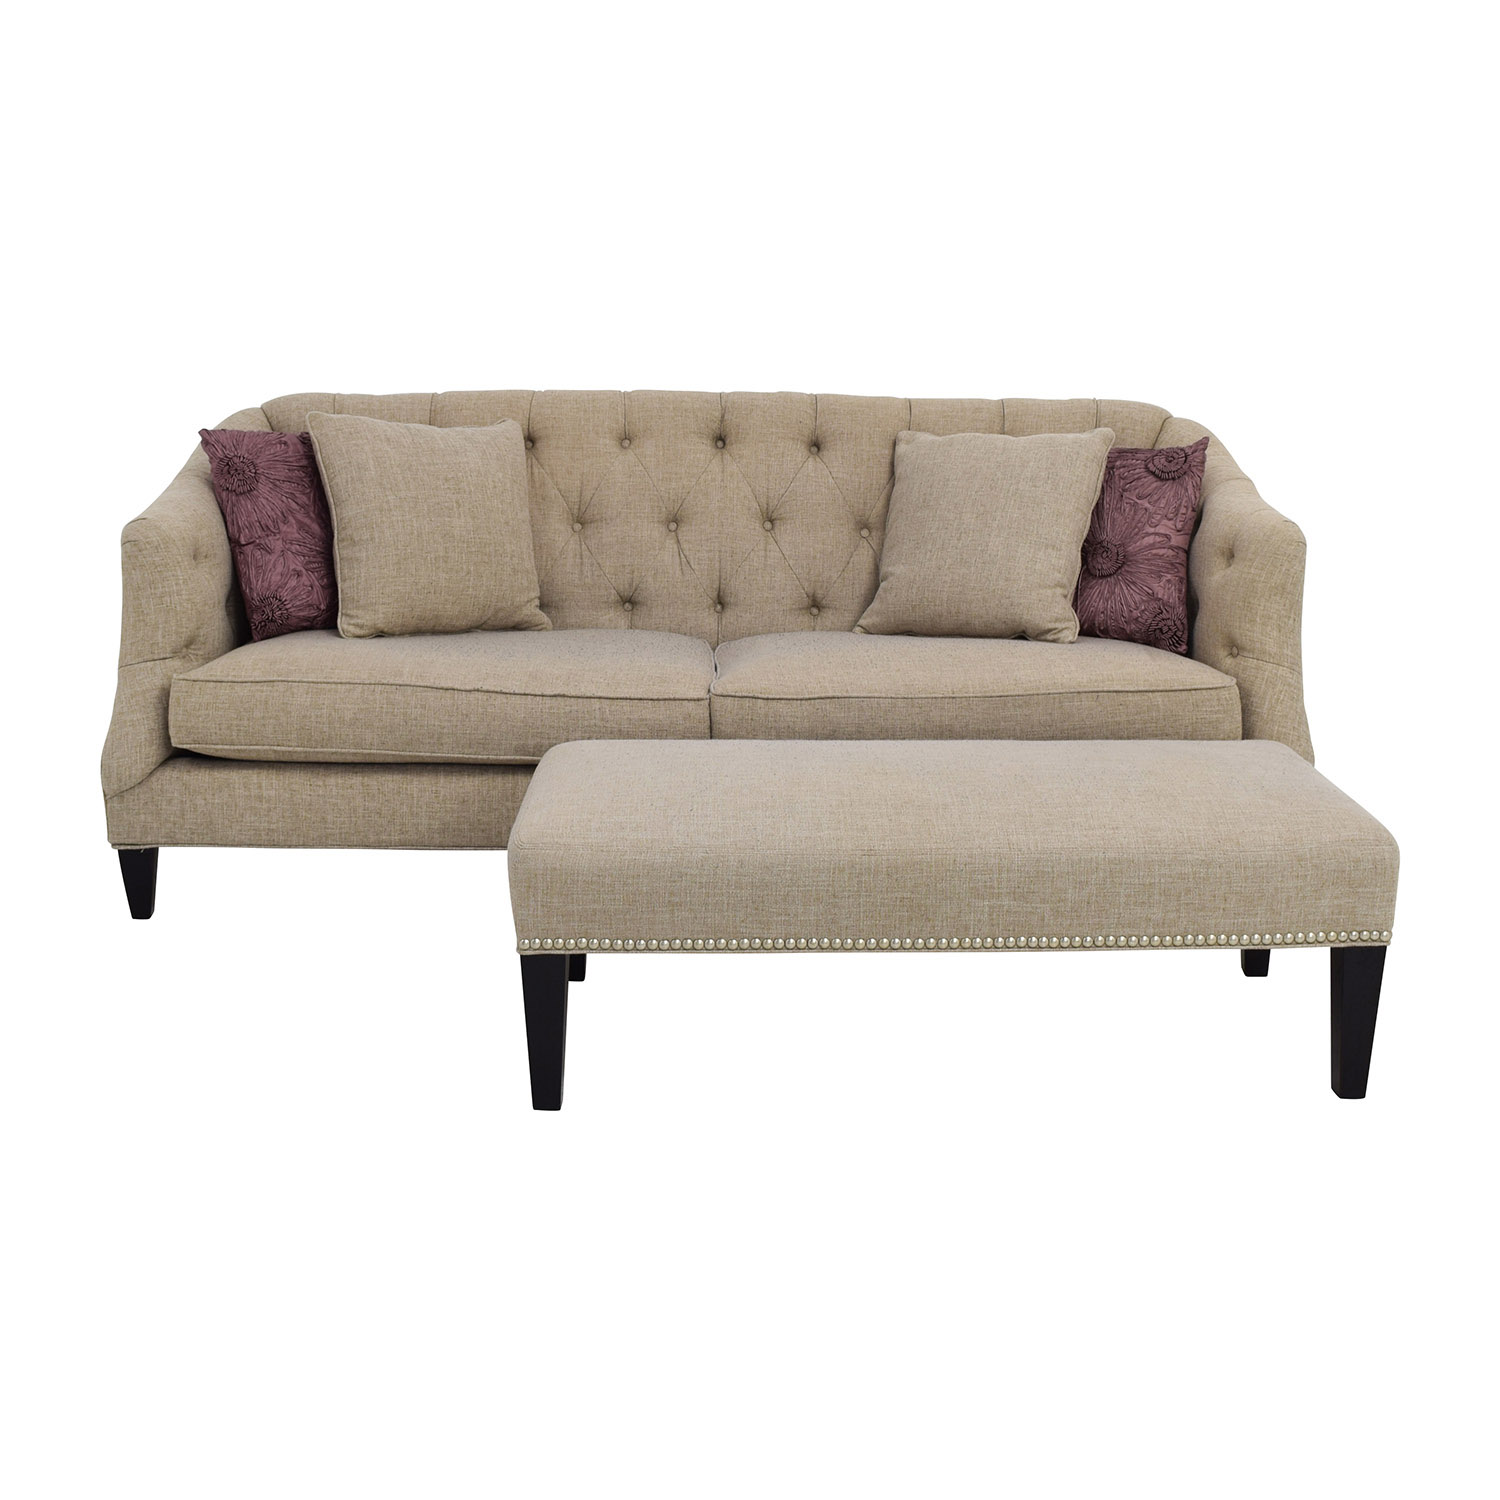 Raymour & Flanigan Tufted Beige Sofa and Ottoman Raymour and Flanigan